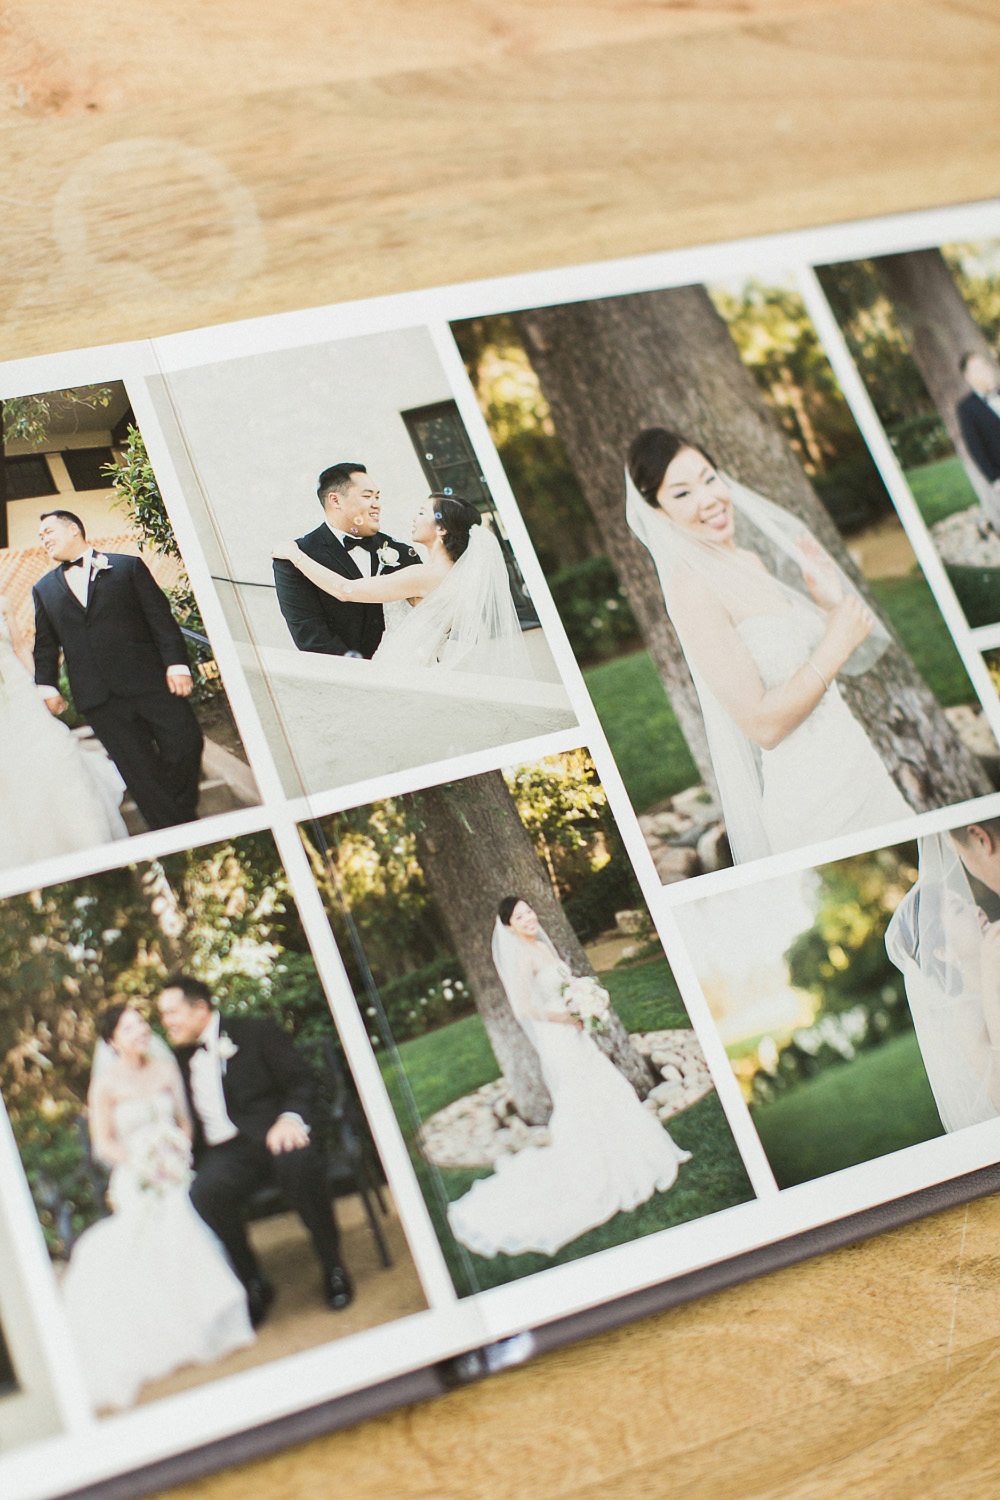 wedding-photography-albums-lay-flat-flush-mount-leather-hi-res-001_4.jpg